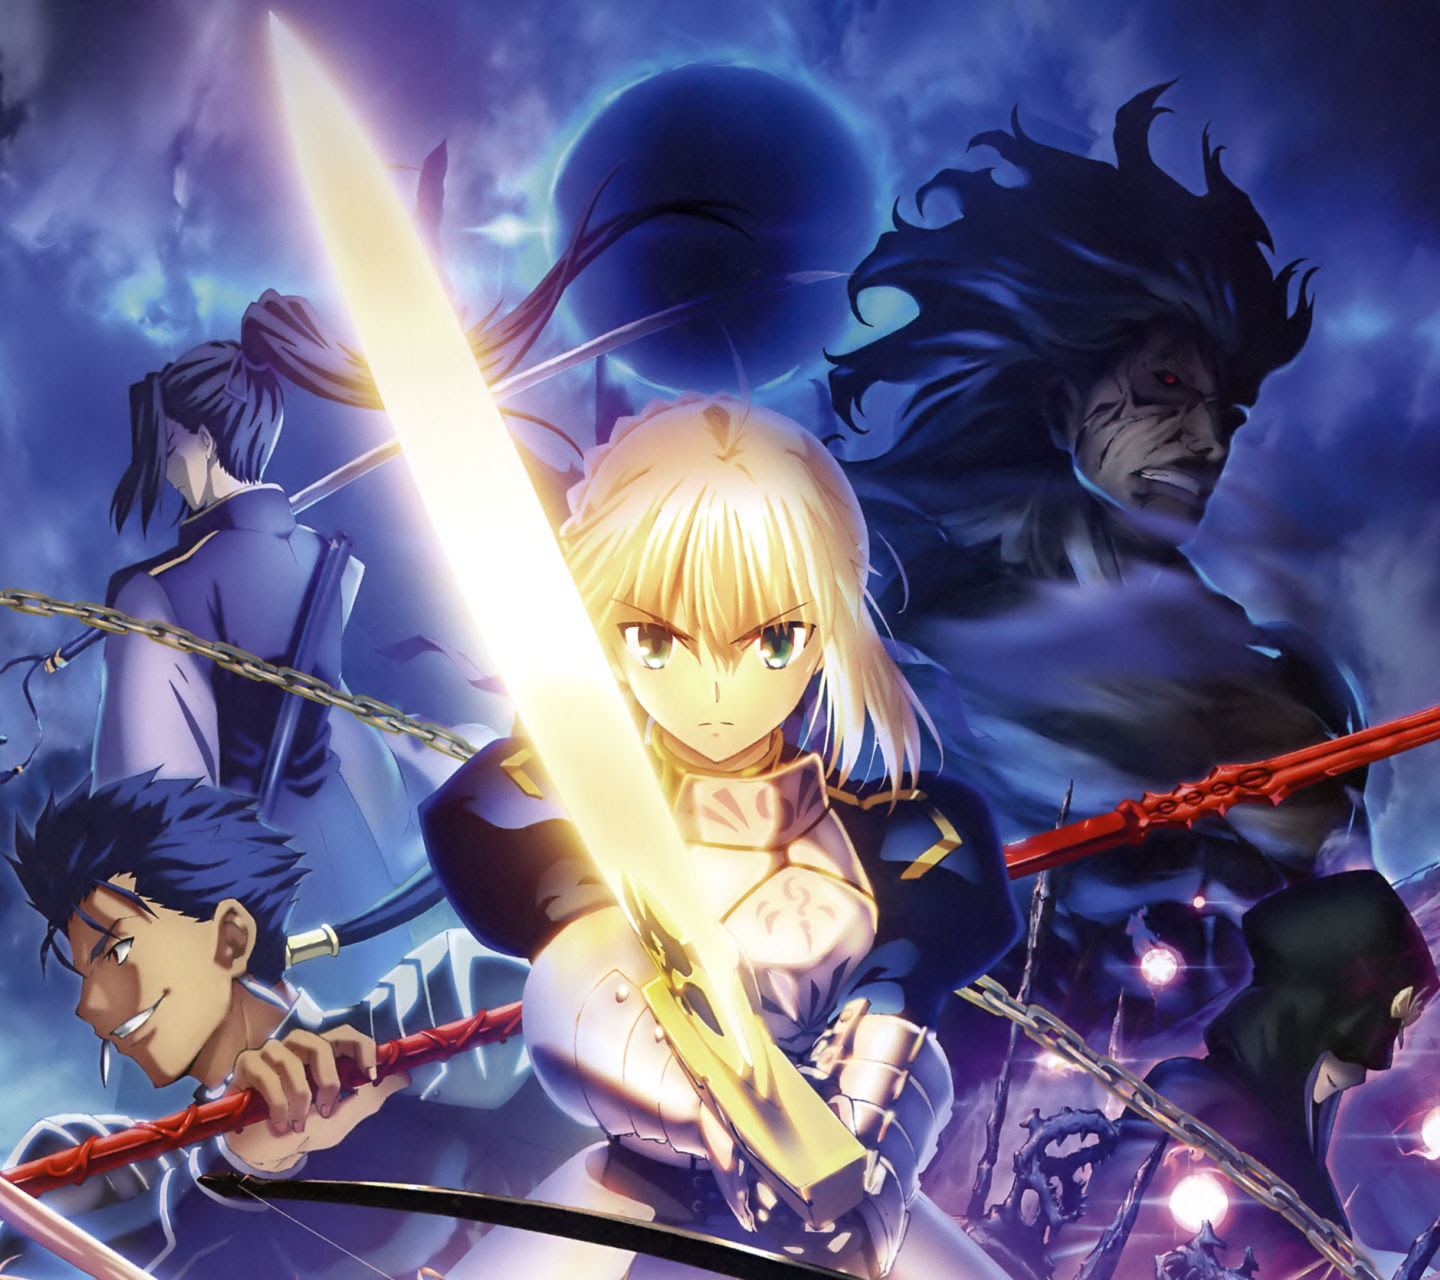 Fate Stay Night Android壁紙 画像 4 1440 1280 アニメ壁紙